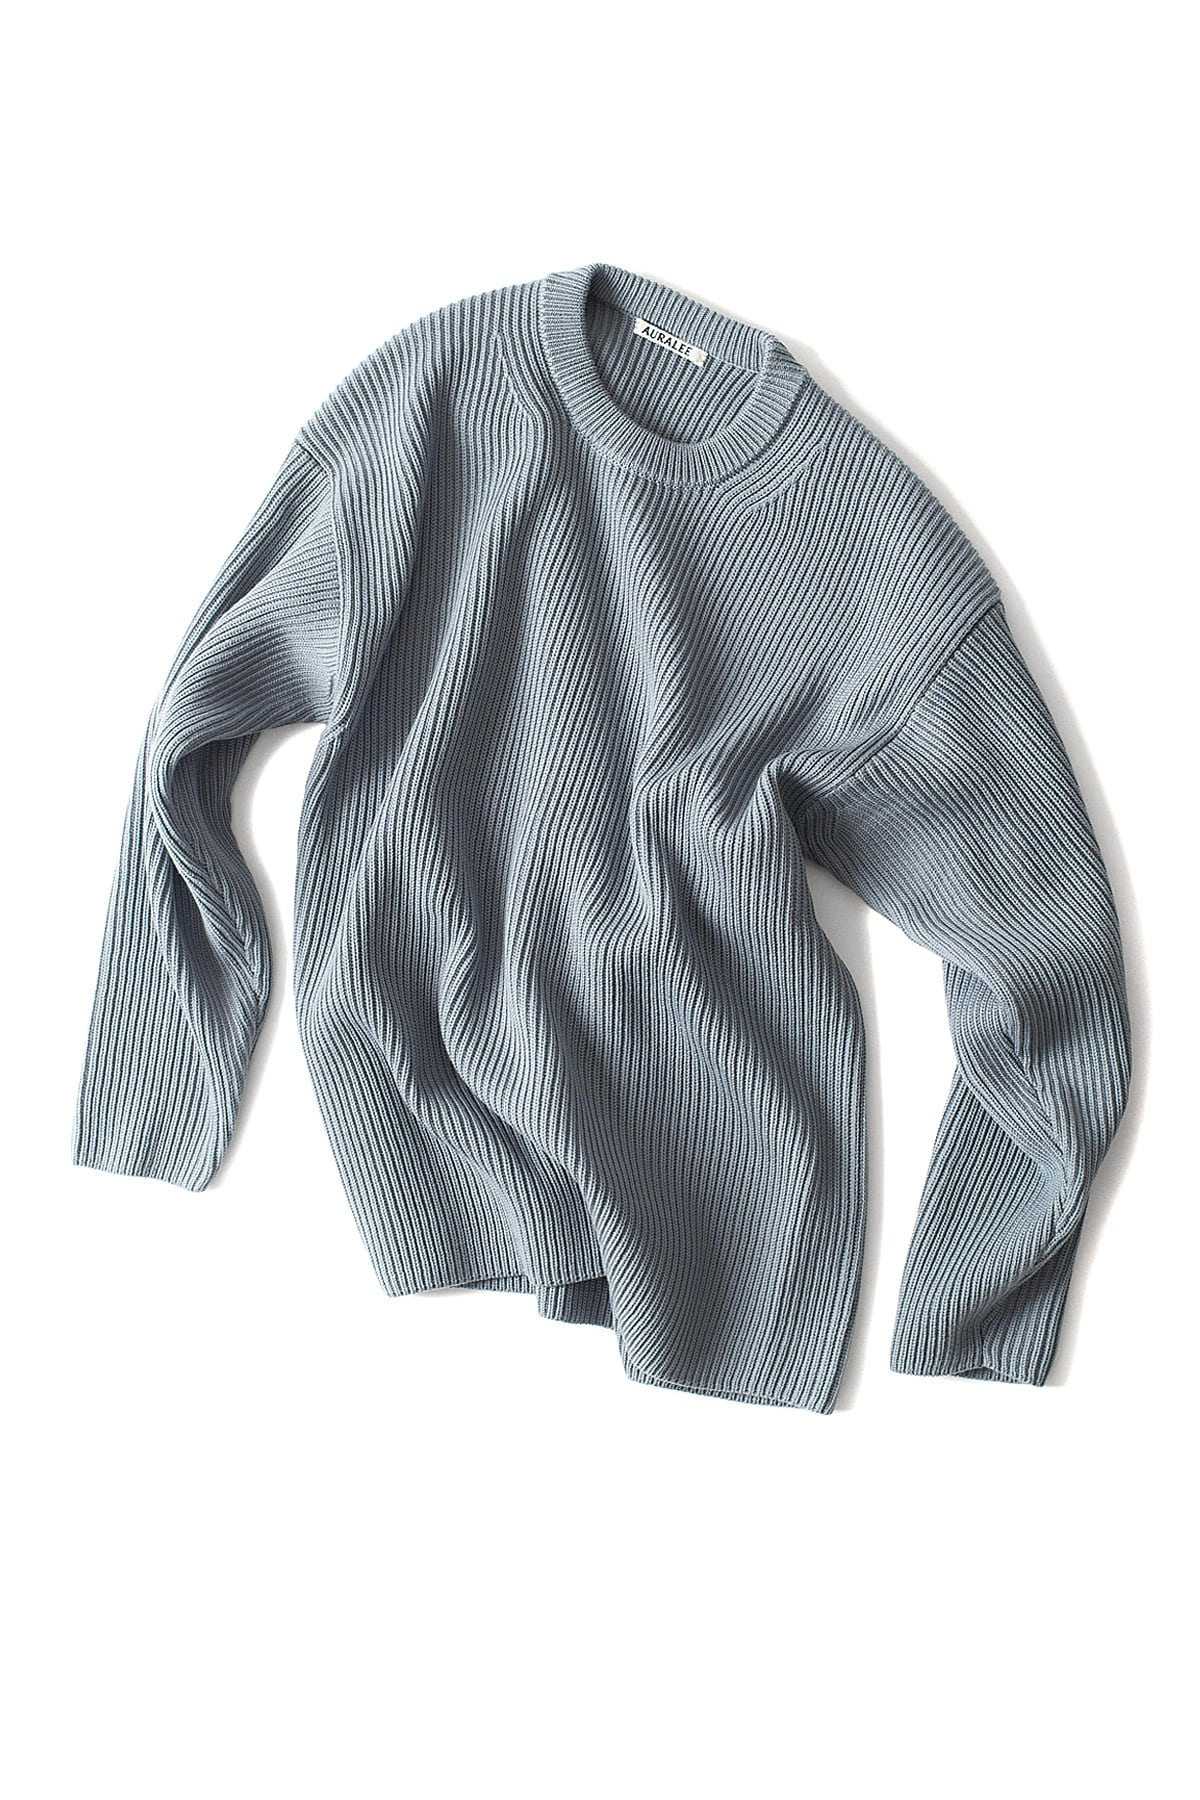 Auralee : Super Fine Wool Rib Knit Big P/O (Blue Gray)